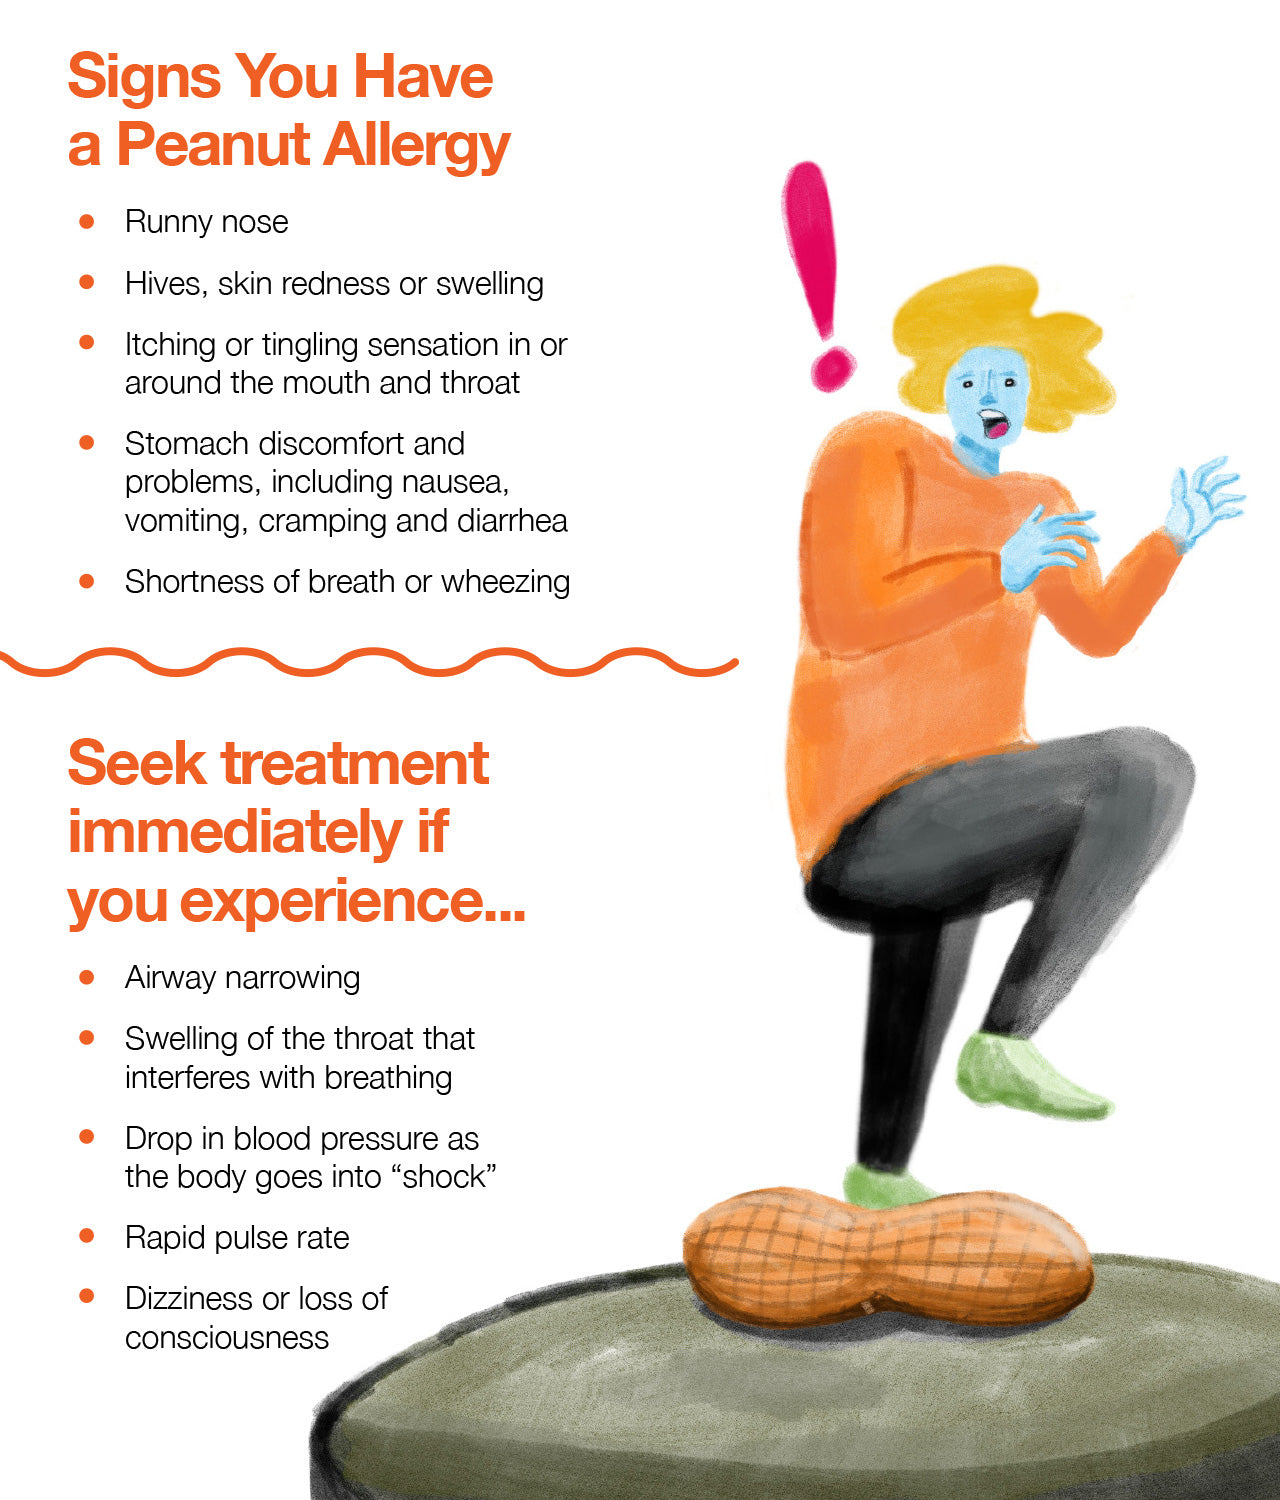 peanut allergies are one of the most frequent causes of food-induced anaphylaxis, which is a serious condition that can lead to loss of life.